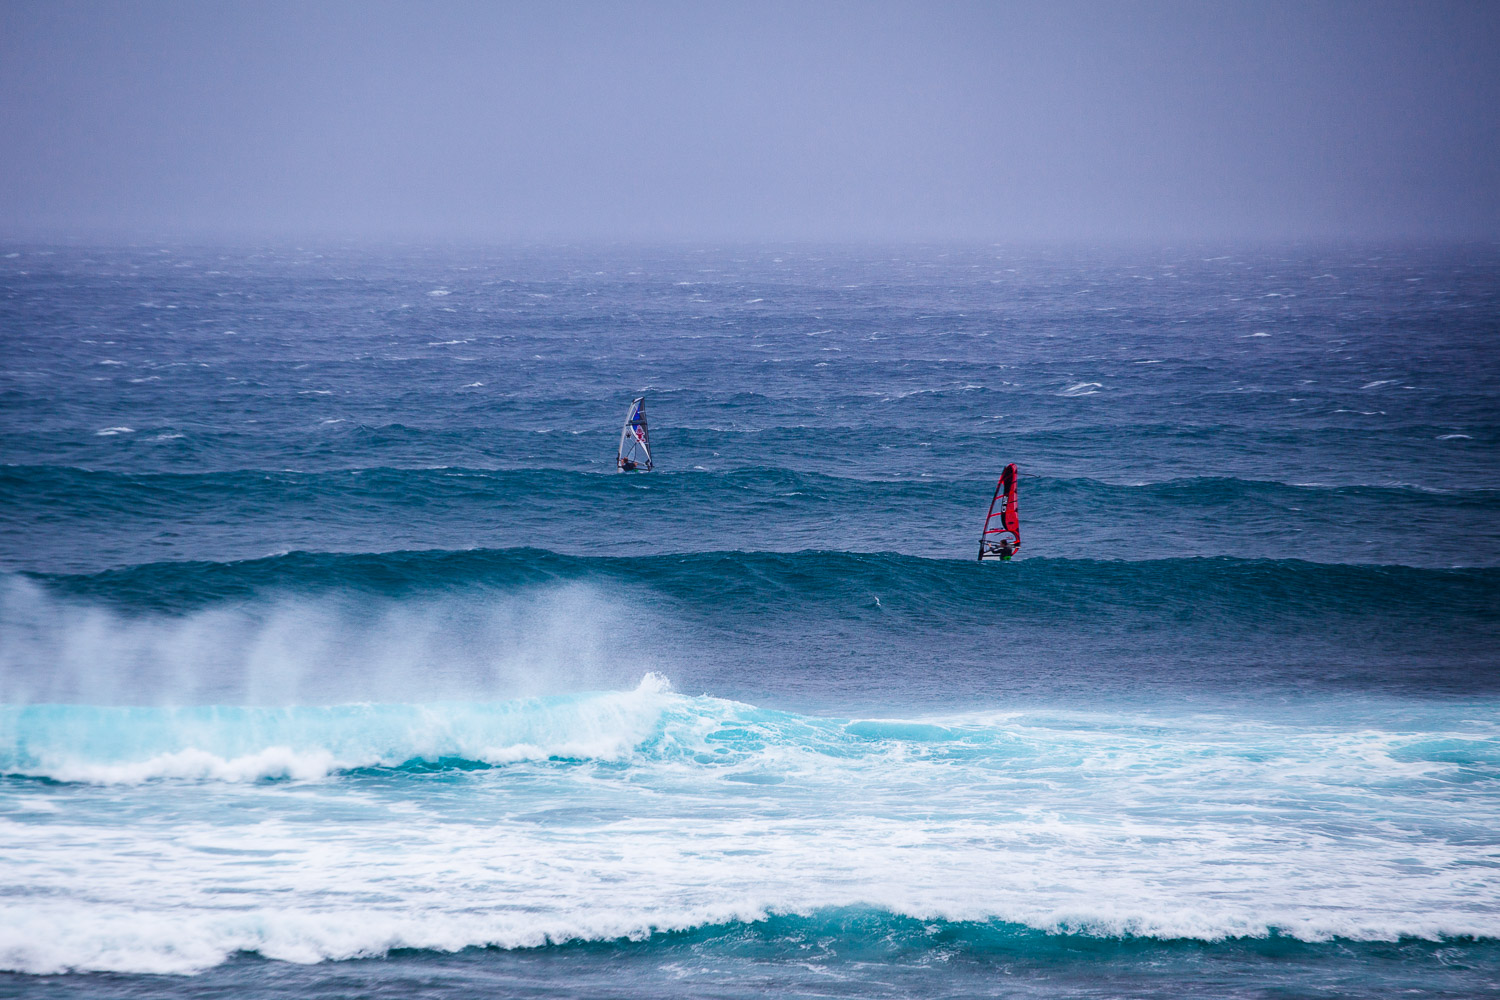 windsurfing-maui-pueo-creations-professional-photography-services.jpg